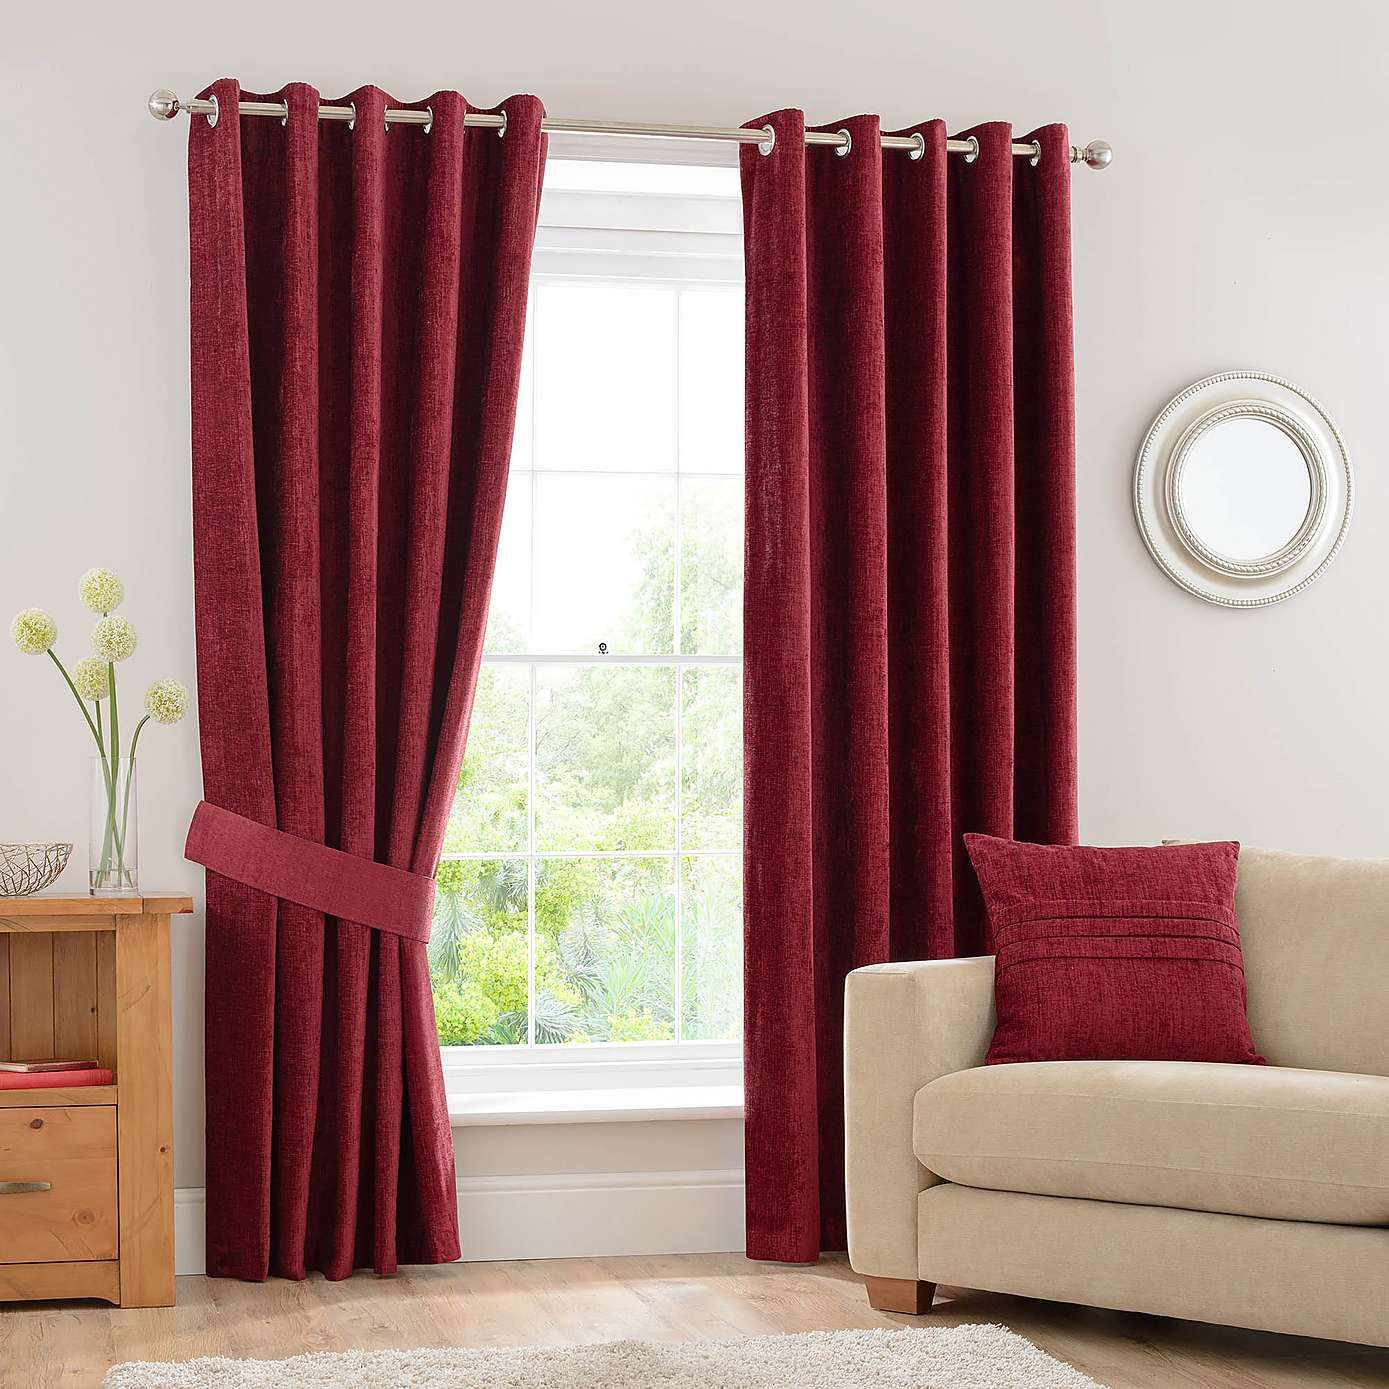 Chenille Wine Eyelet Curtains Red Curtains Living Room Curtains Living Room Pleated Curtains #wine #curtains #for #living #room